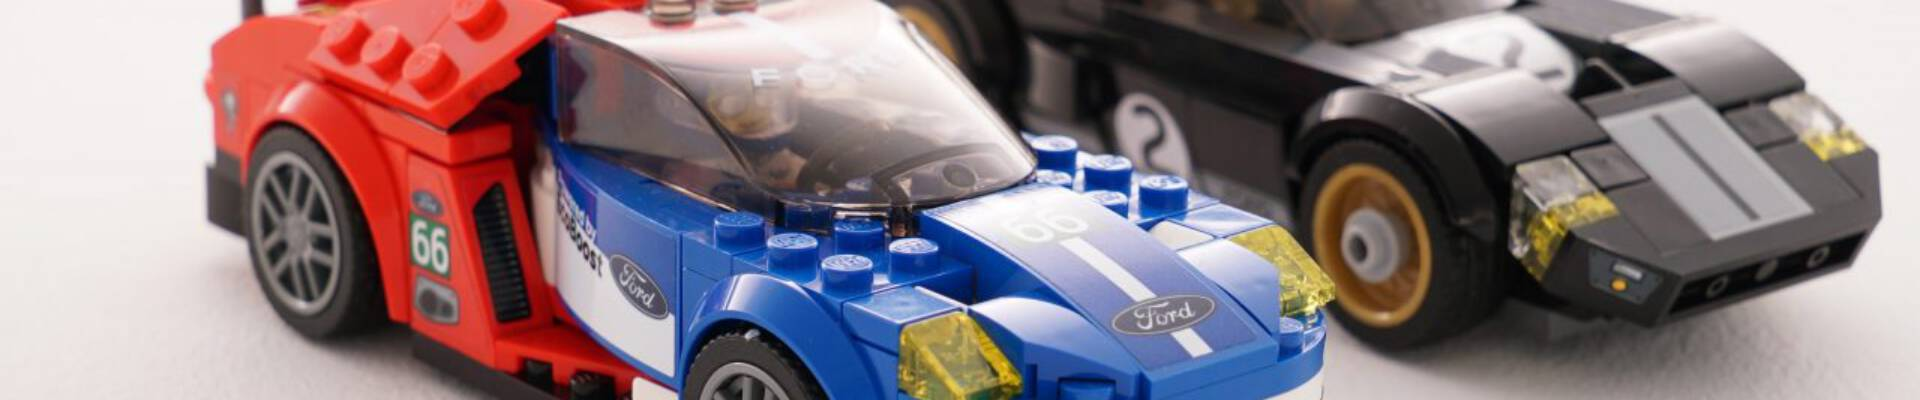 01-Ford-LEGO-Speed-Champions-1280x855